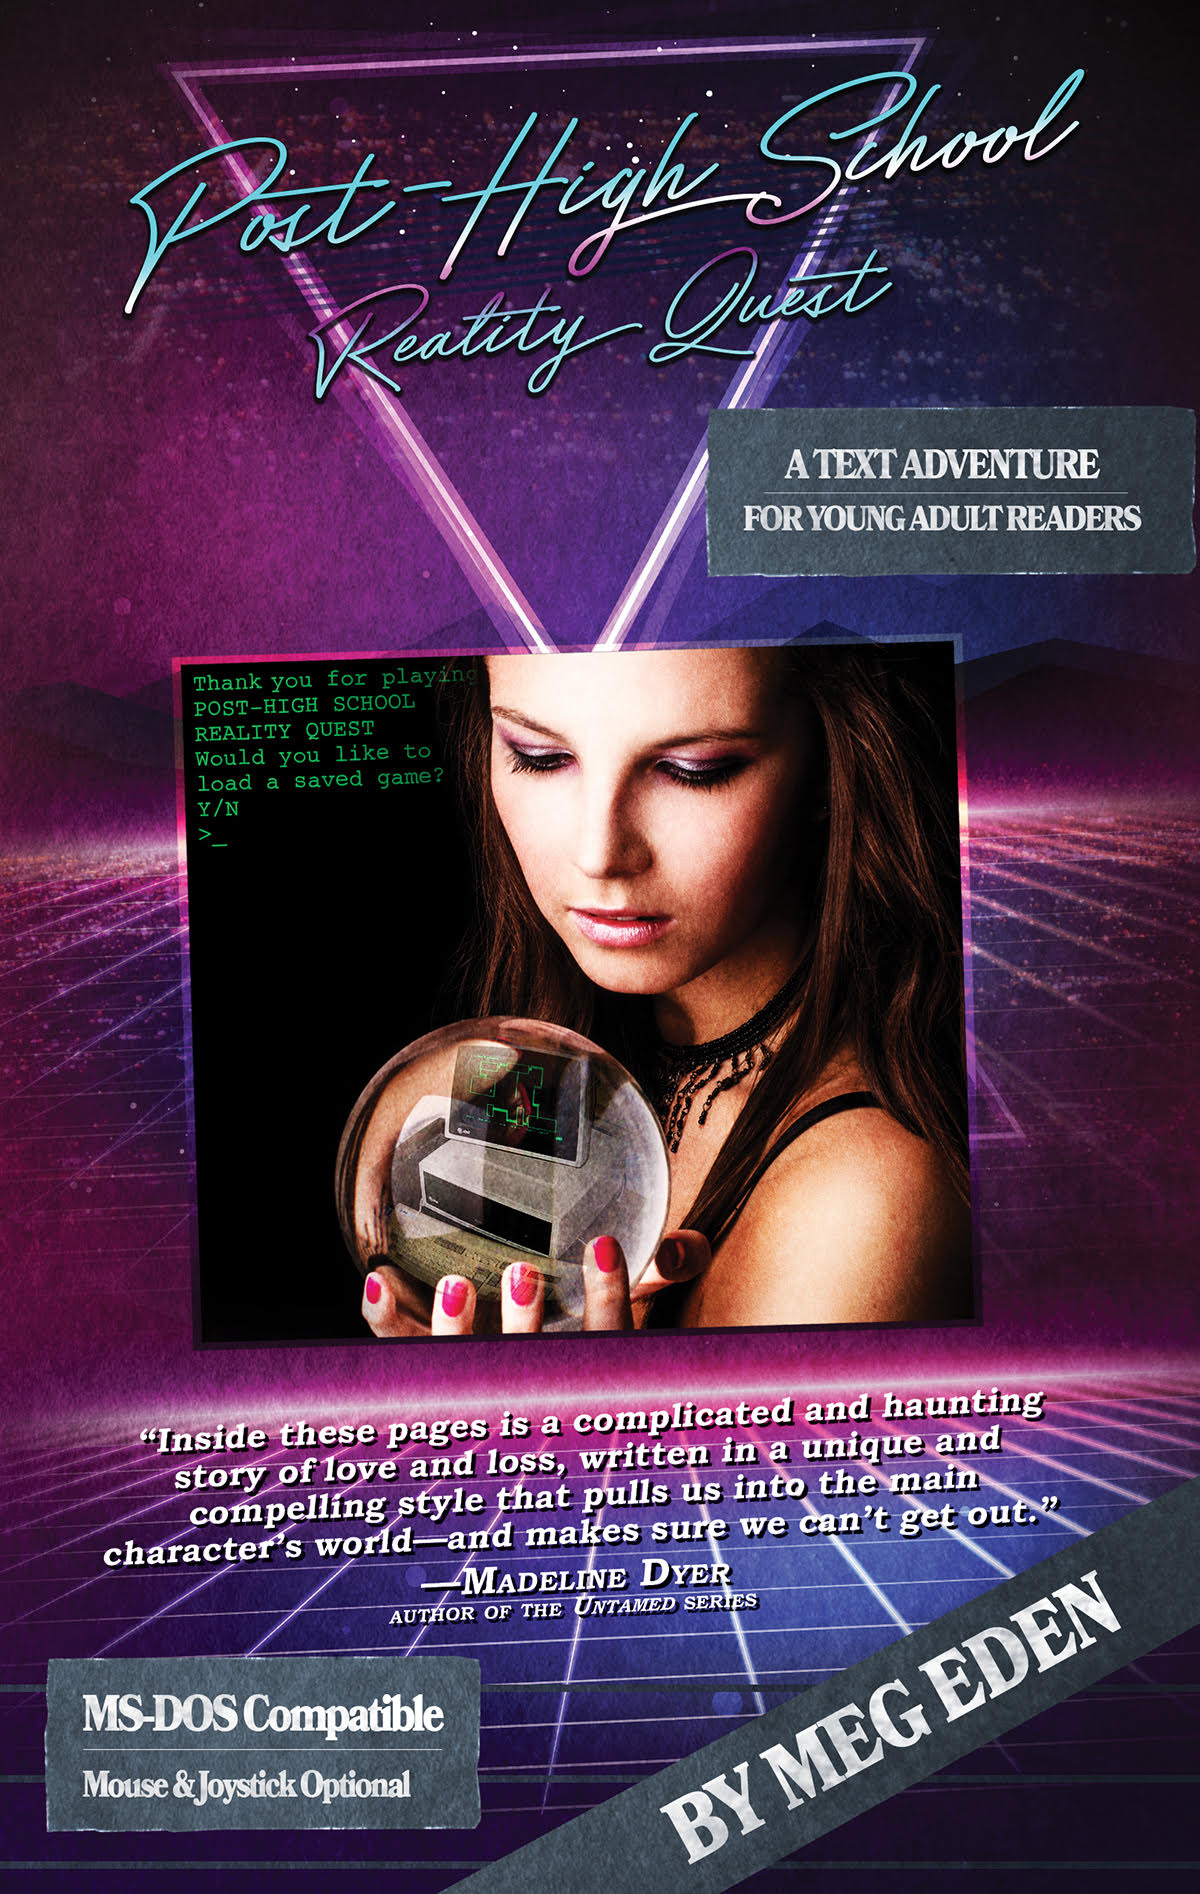 Meg Eden Discusses Her Text Adventure Game Inspired Book POST HIGH SCHOOL REALITY QUEST_2